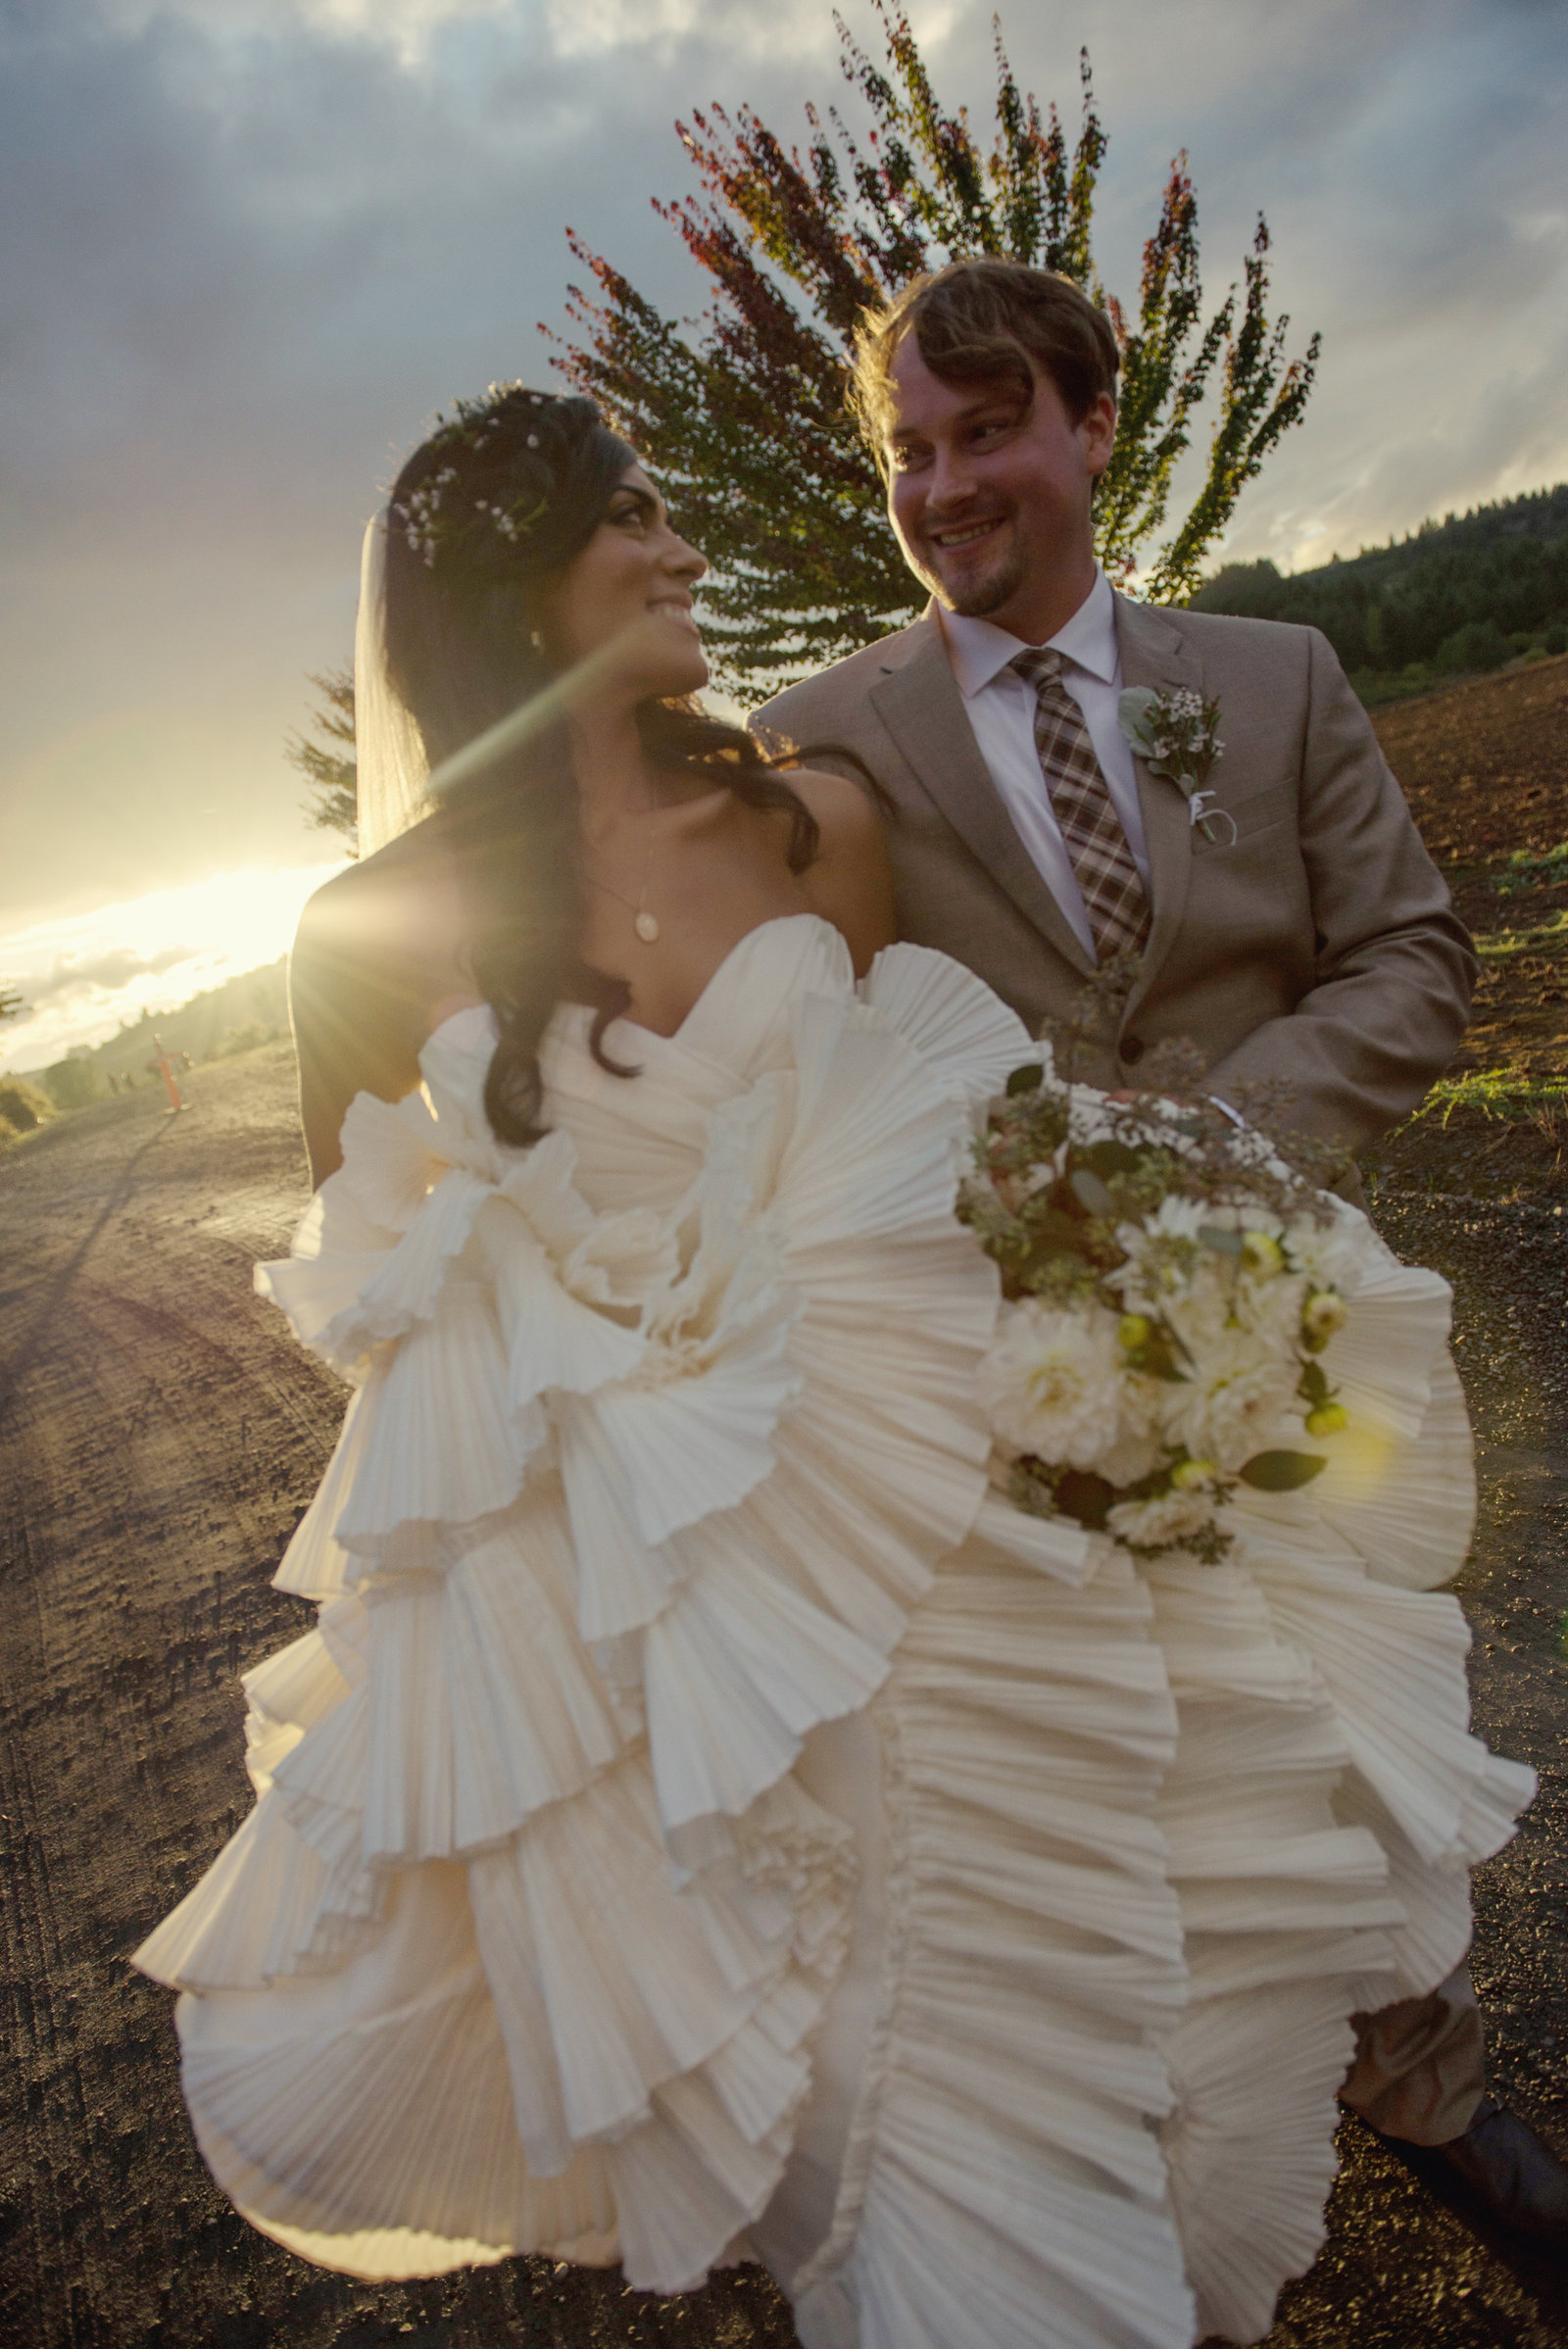 Crystal Genes Photography LAUREL RIDGE WINERY WEDDING_130921-184134